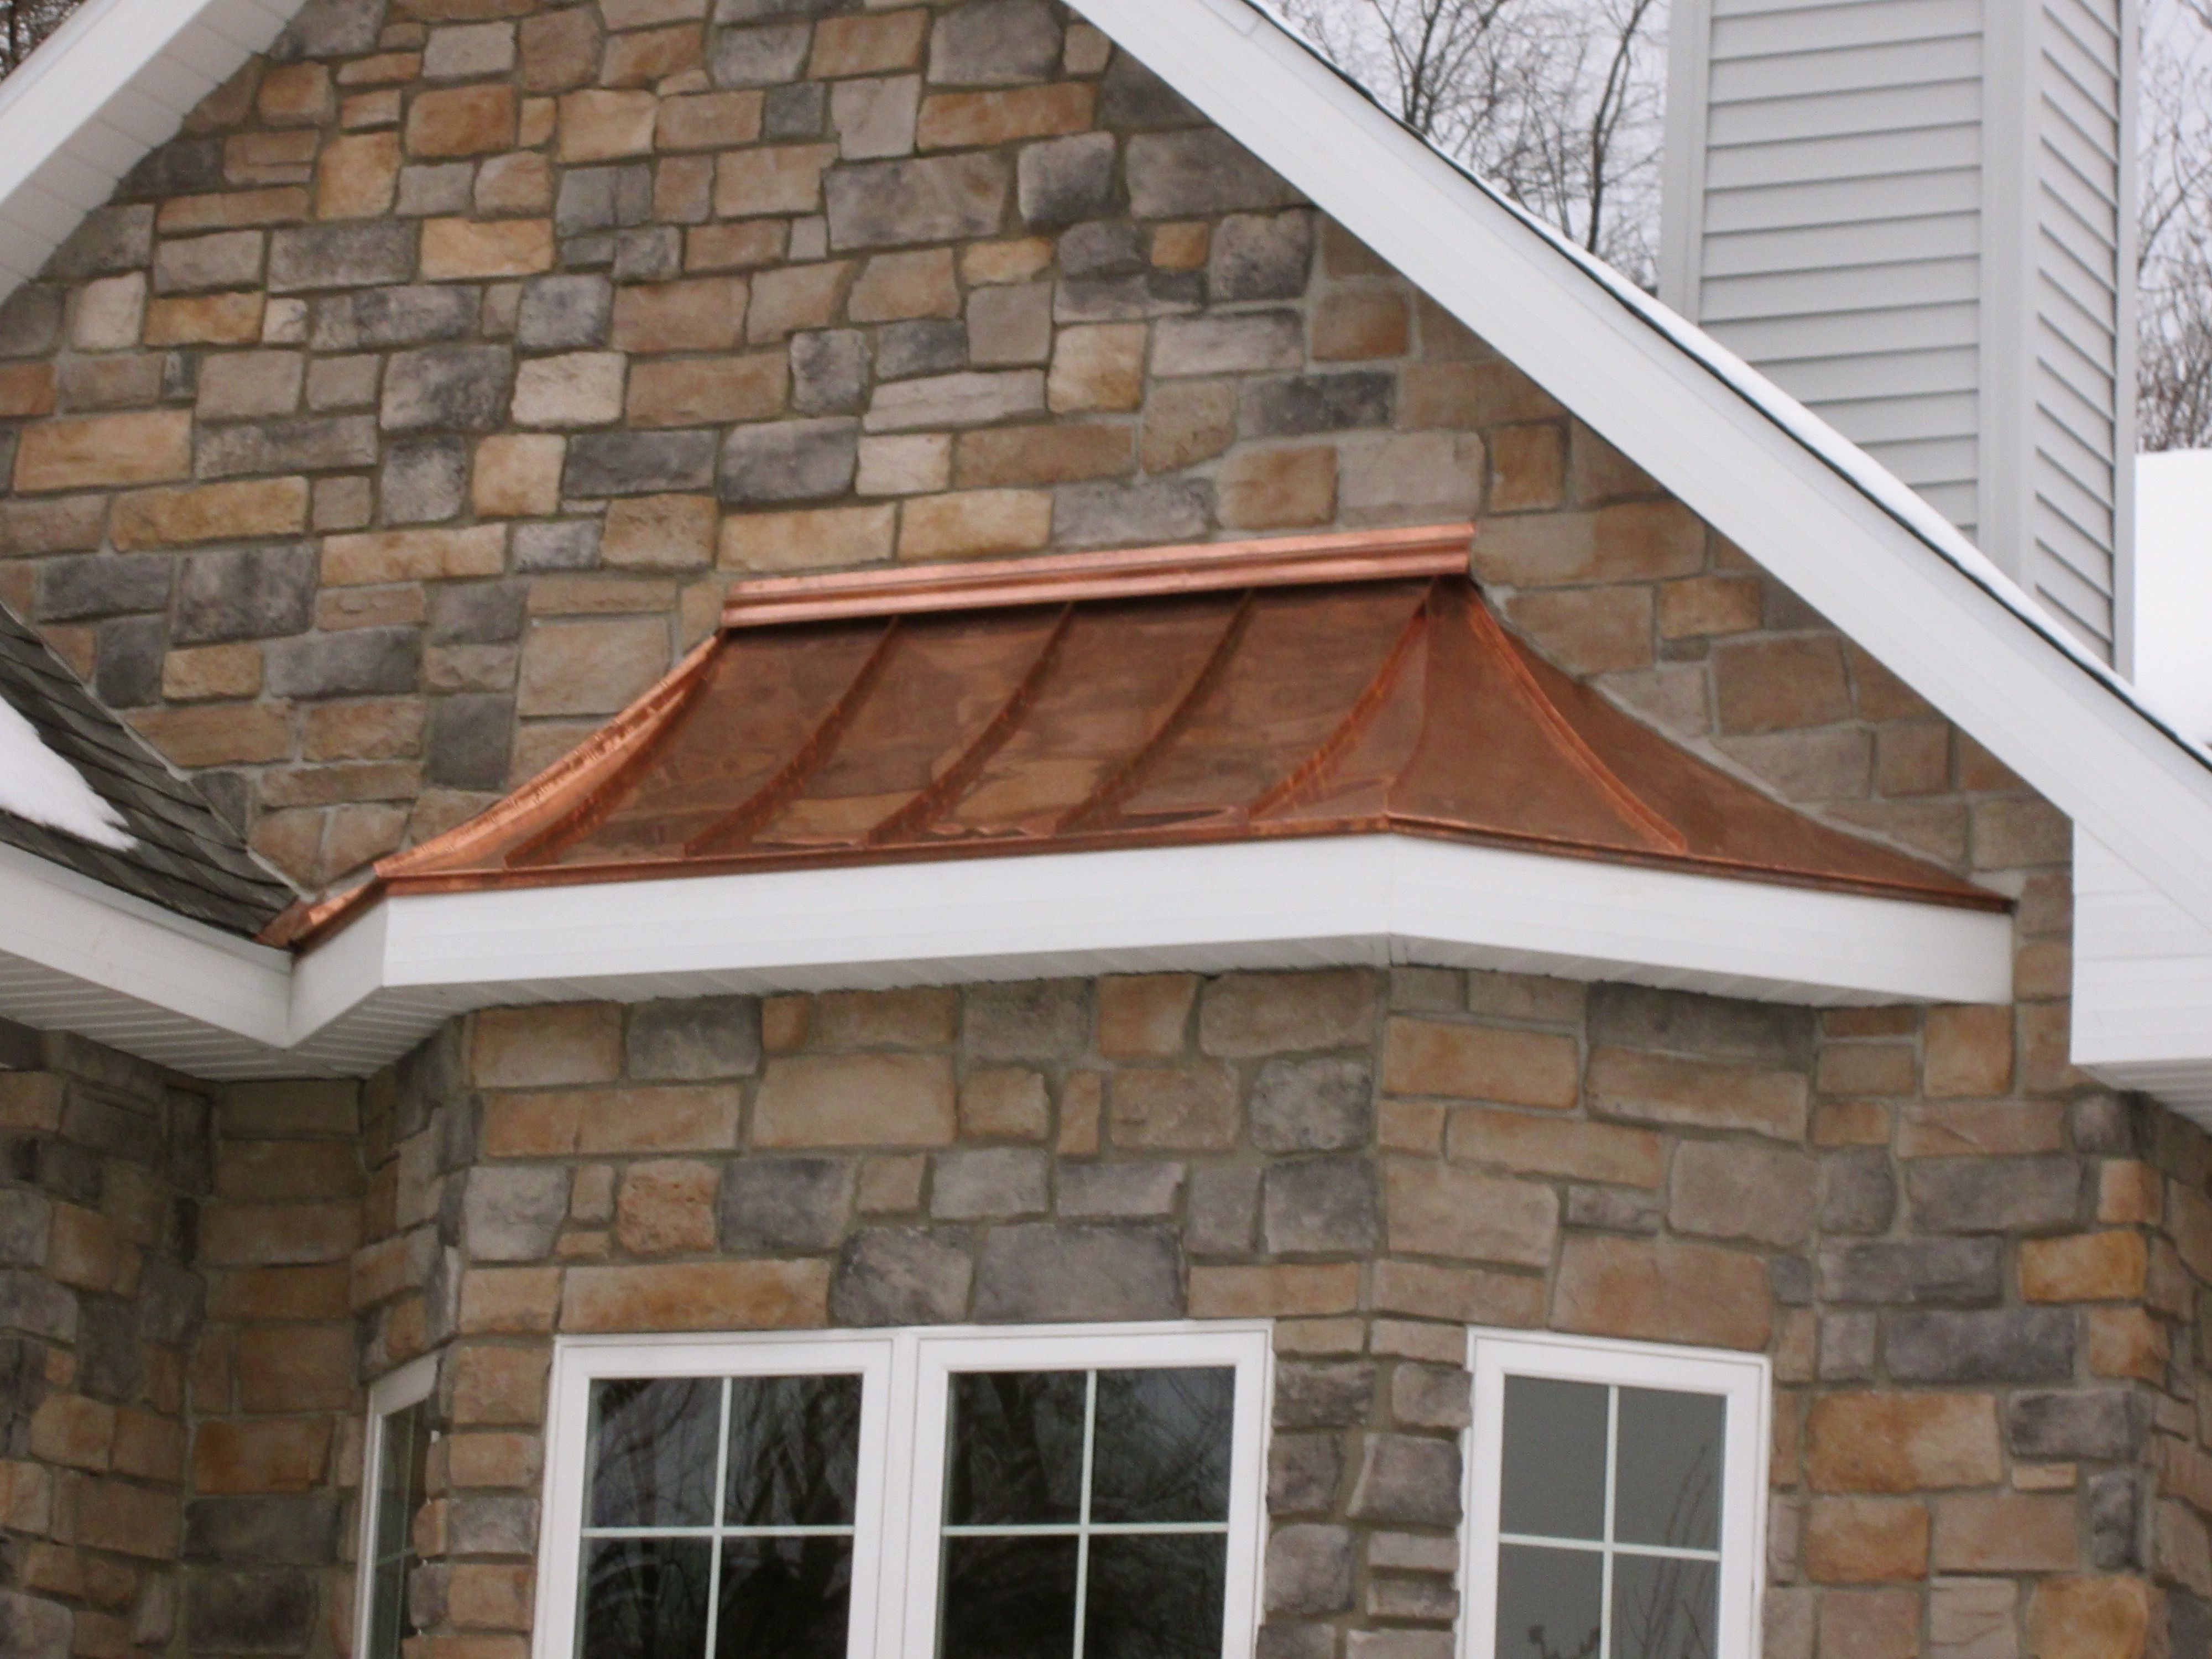 fitchburg copper bay window roof copper roof window and bay windows fitchburg copper bay window roof